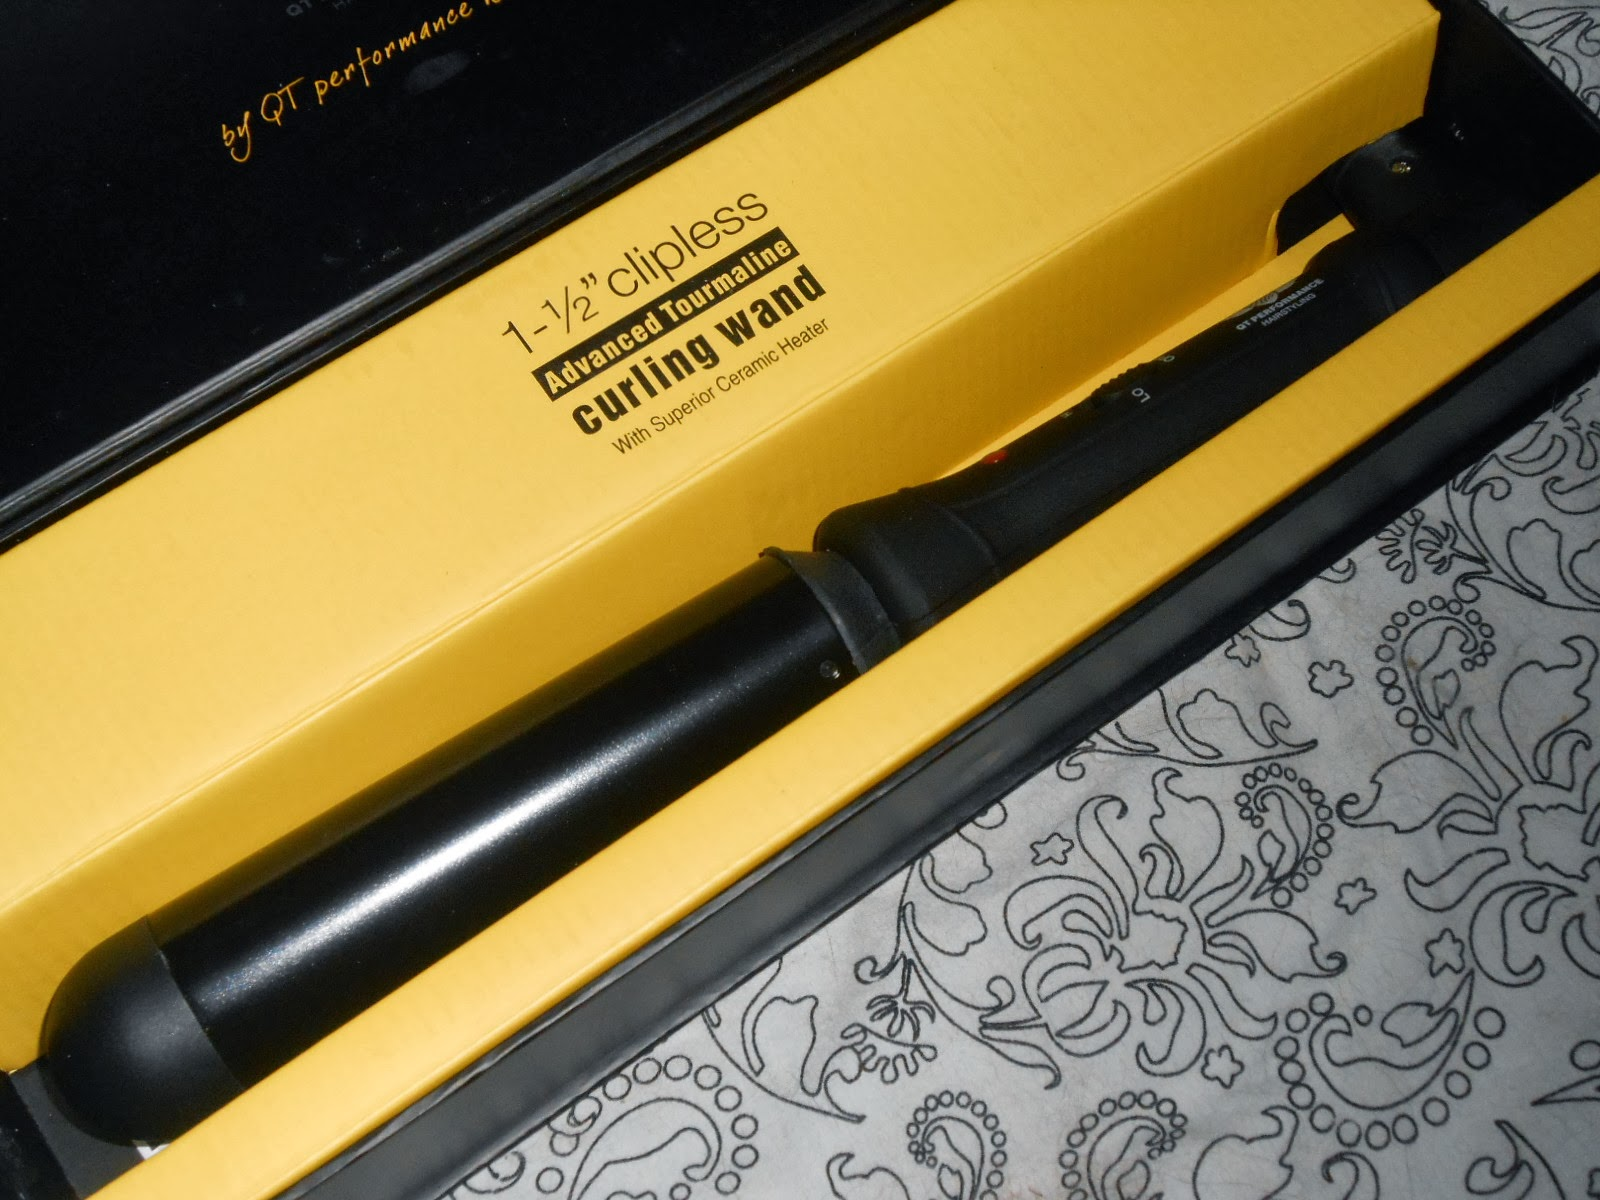 QT Curling Wand Review